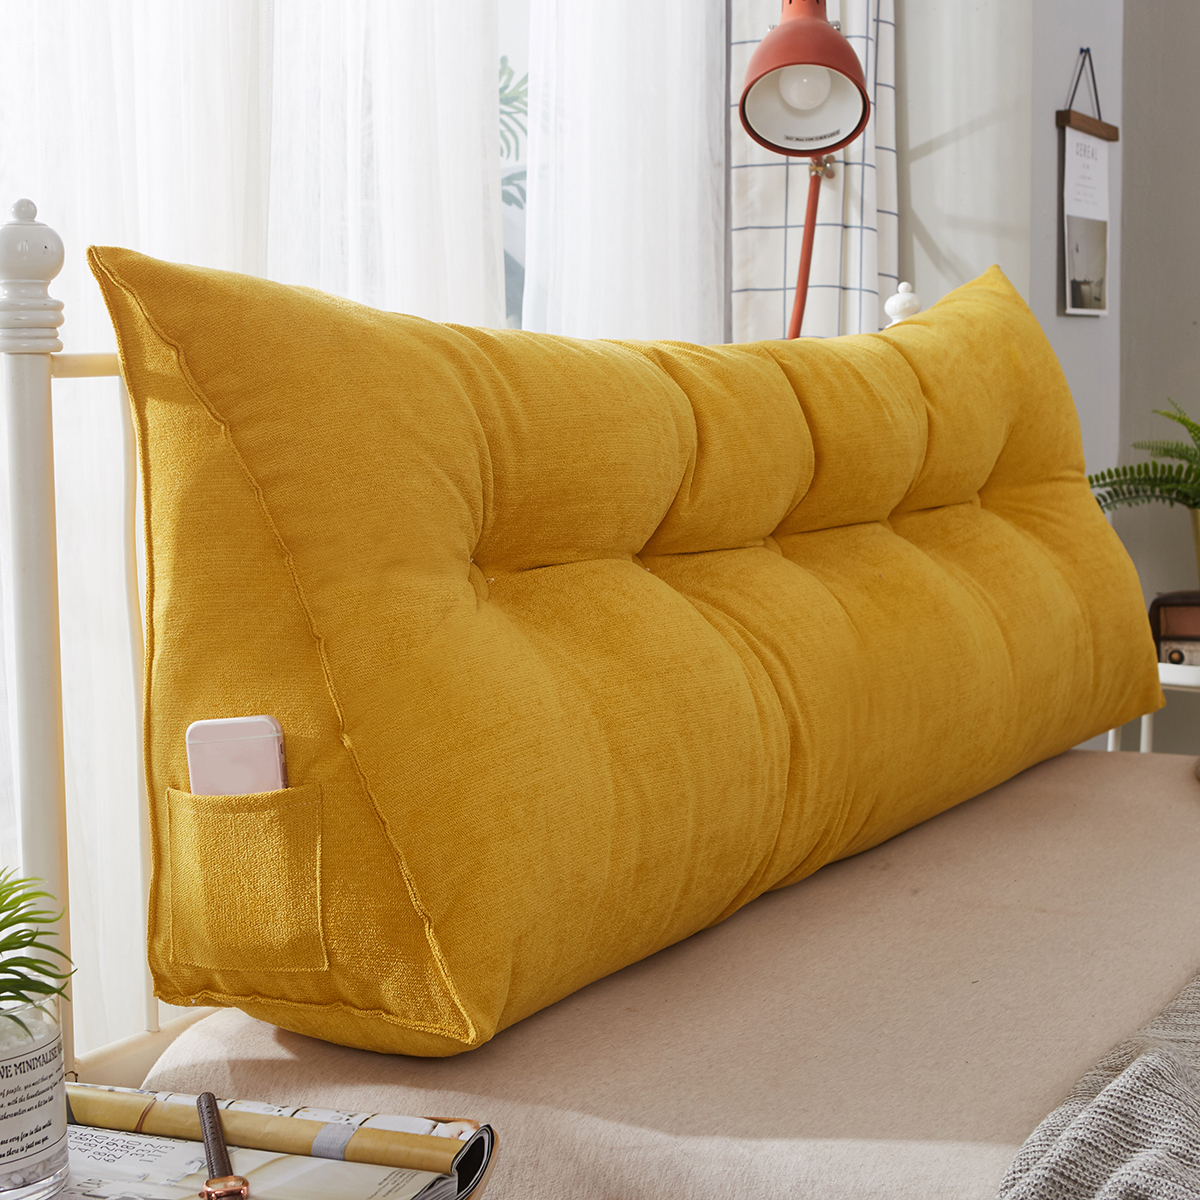 2D8V Triangle Cushion Sofa Pillow Reading Pillow Wedge Pillow for Bed and Couch Back Support Lumbar Pillow Removable Washable Color : A, Size : 45x45x20cm